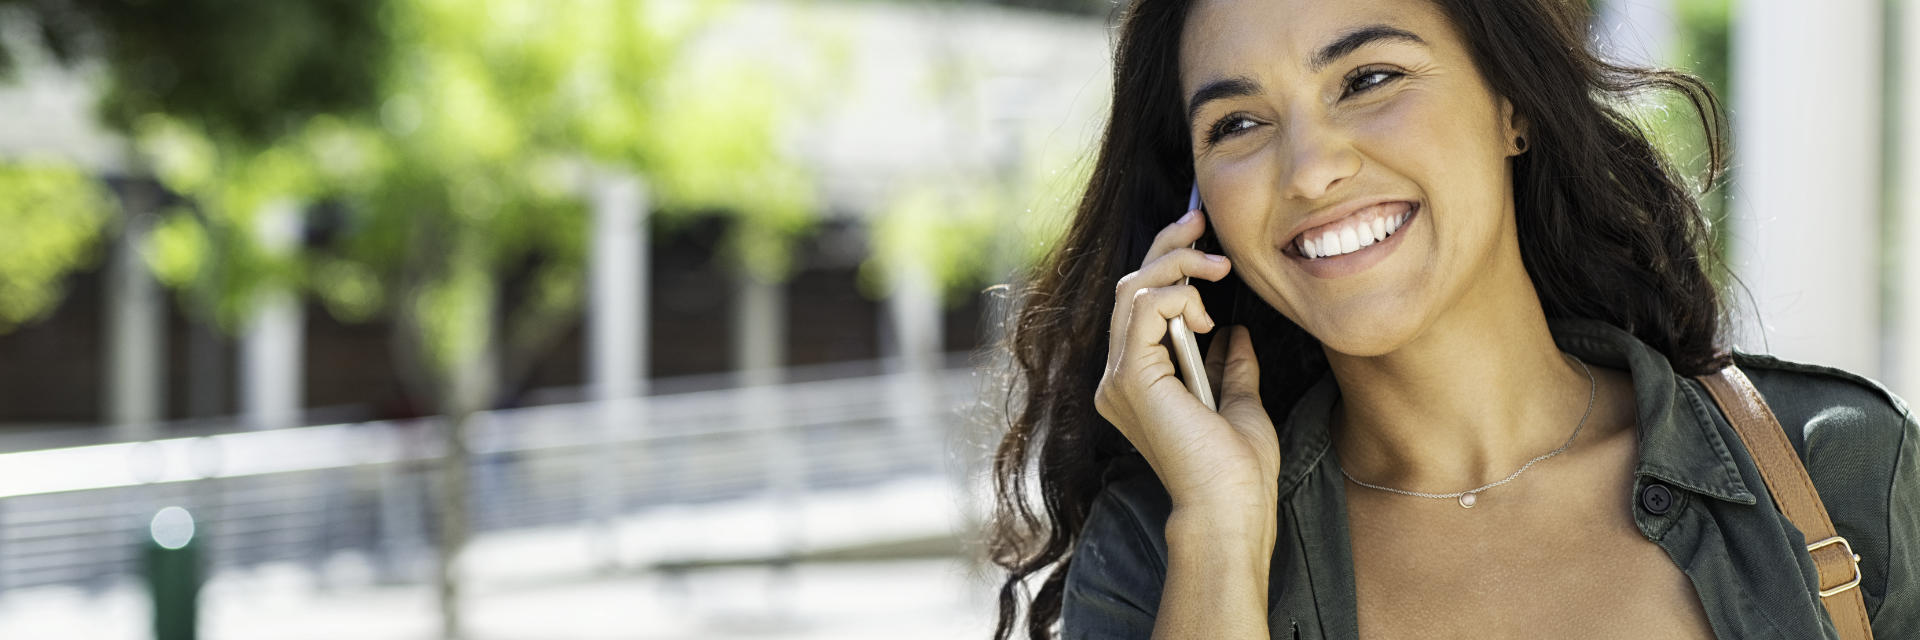 A cheerful woman talking on the phone.